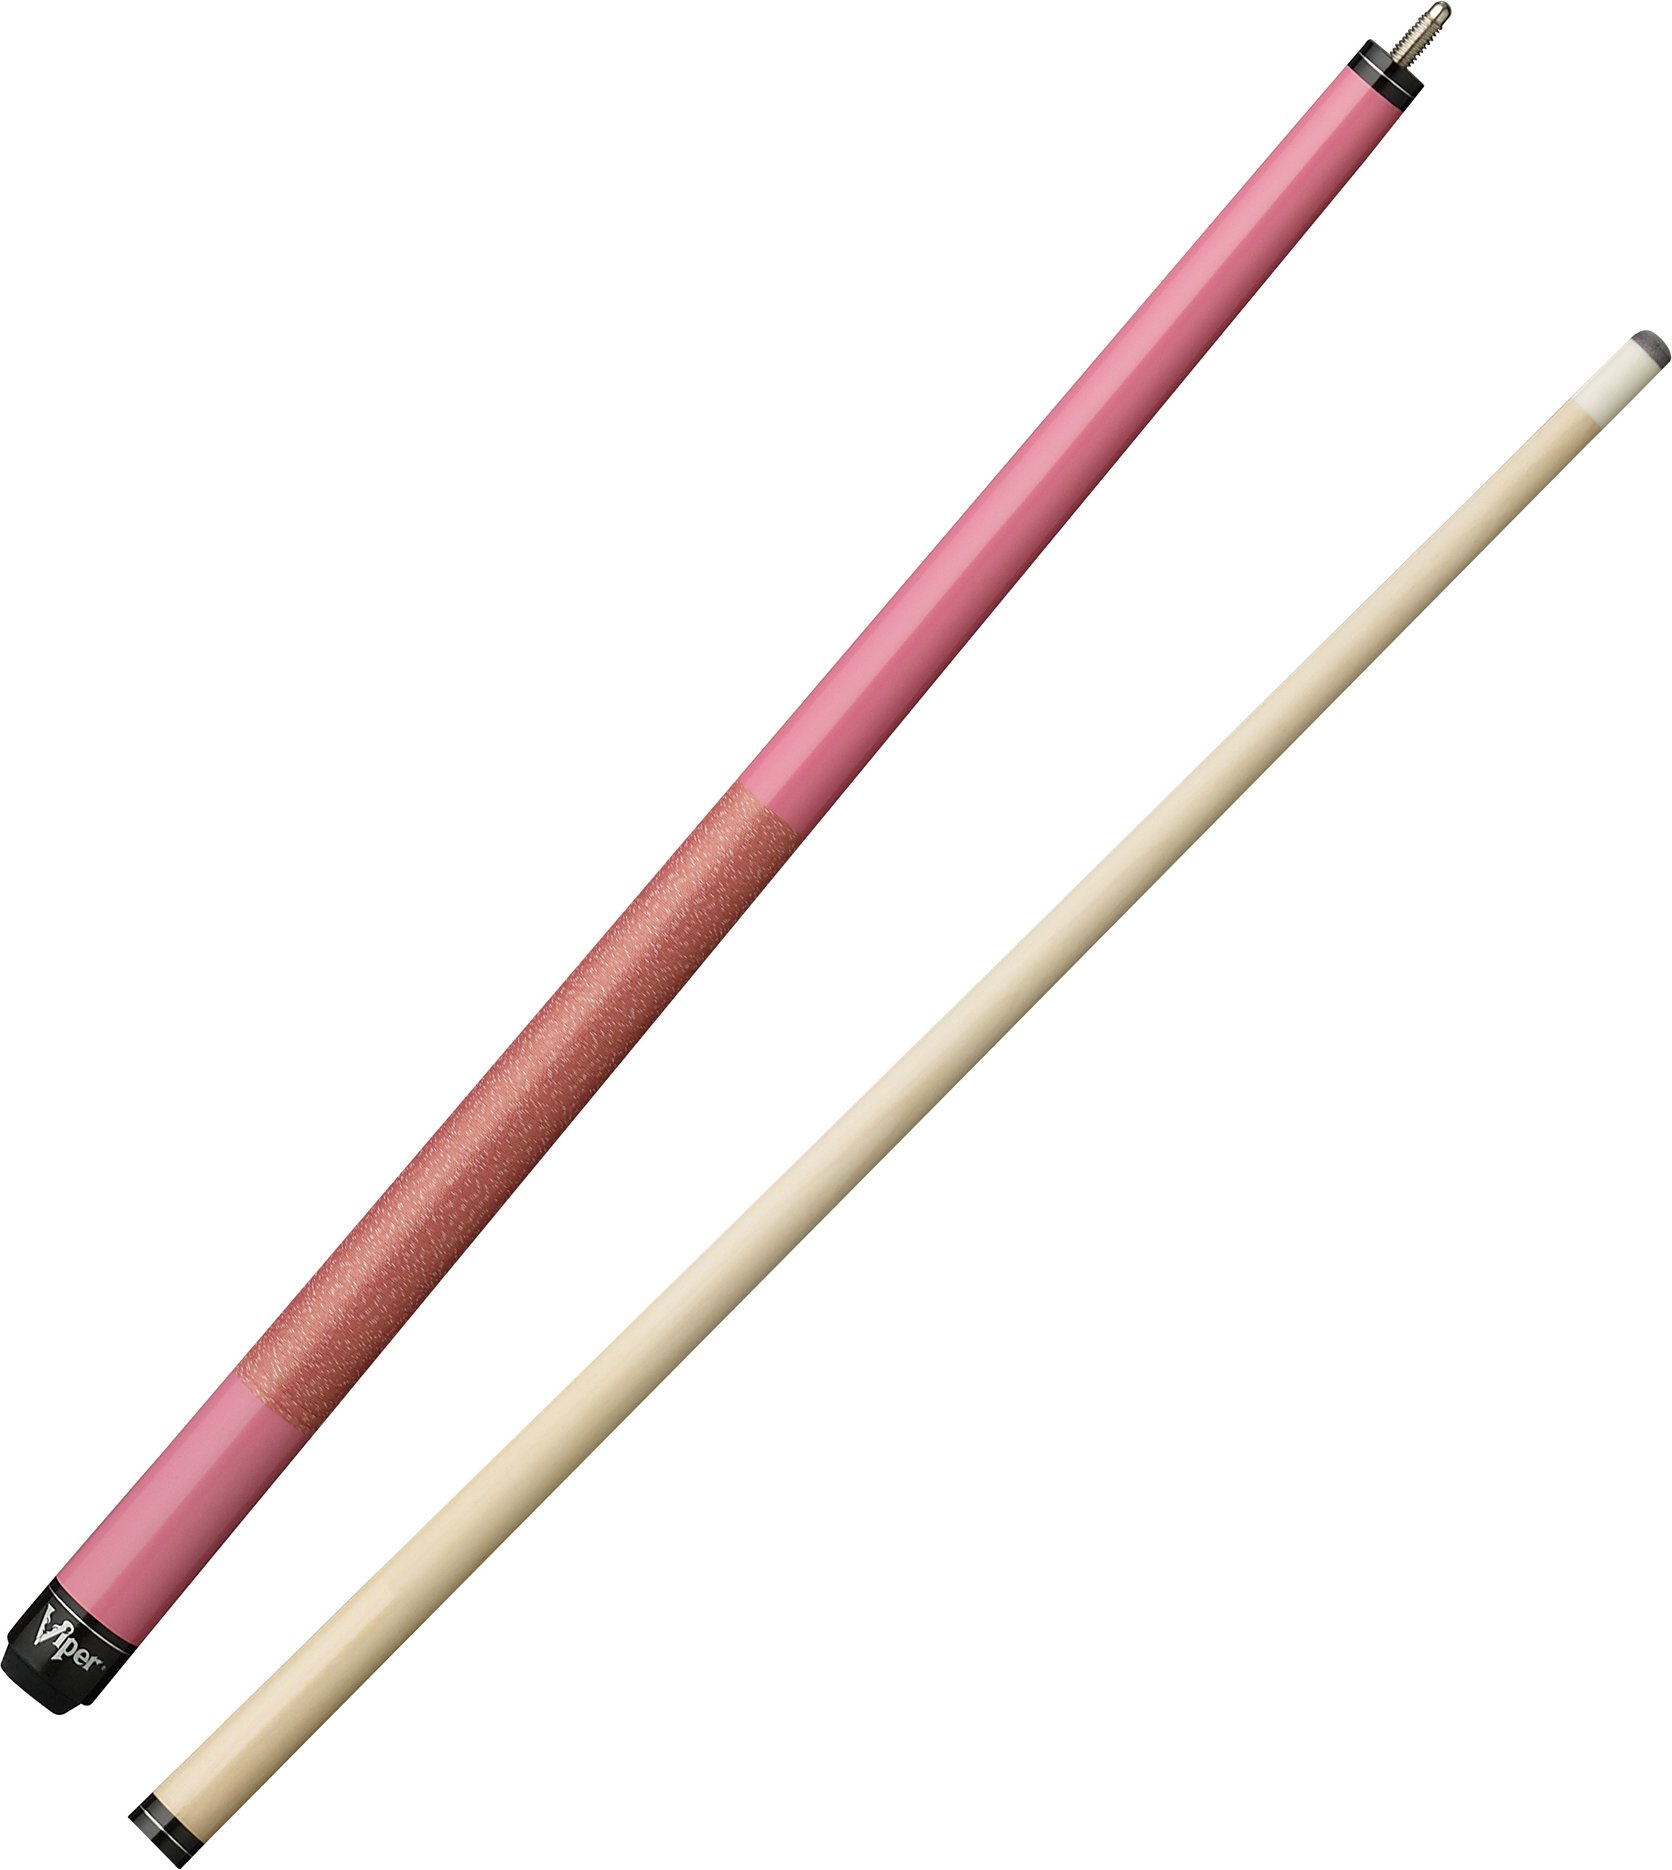 Viper Junior 48'' 2-Piece Billiard/Pool Cue, Pink Lady, 16 Ounce